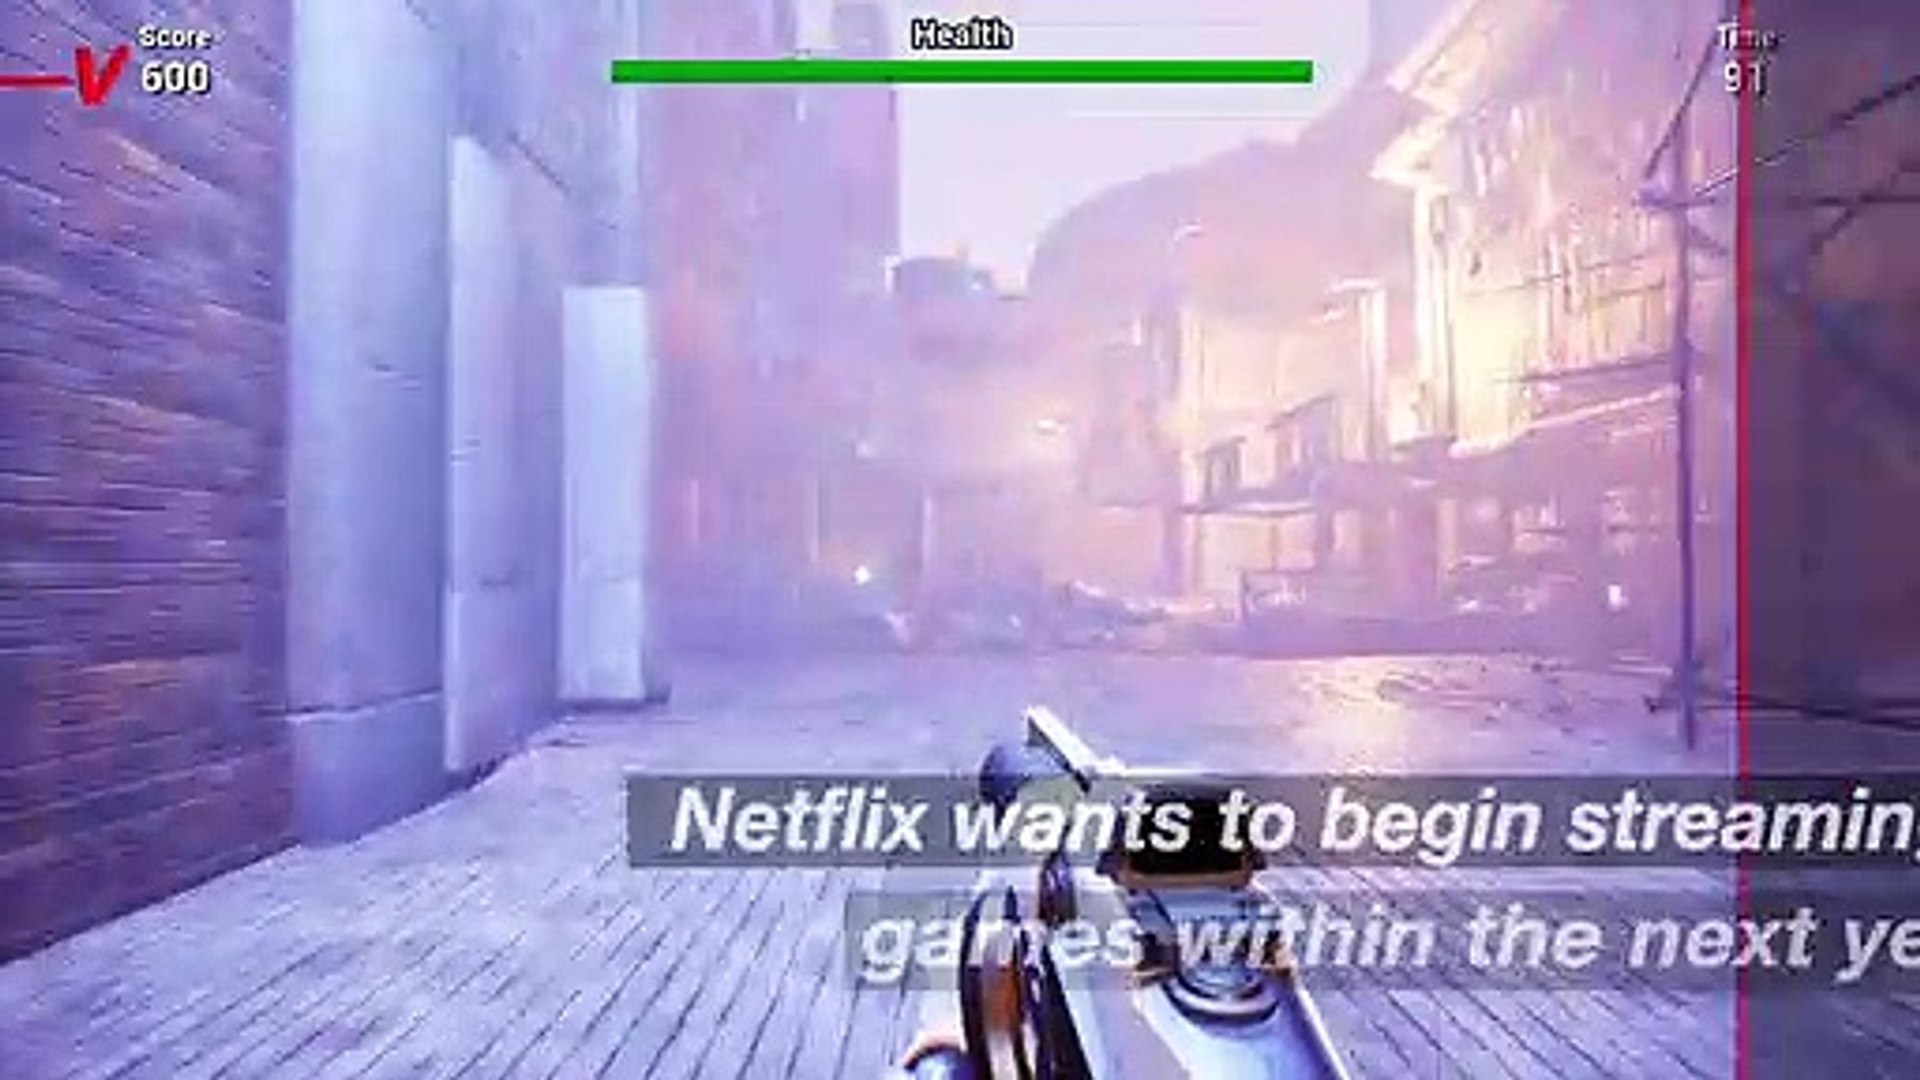 Netflix to Begin Streaming Video Games Within the Next Year